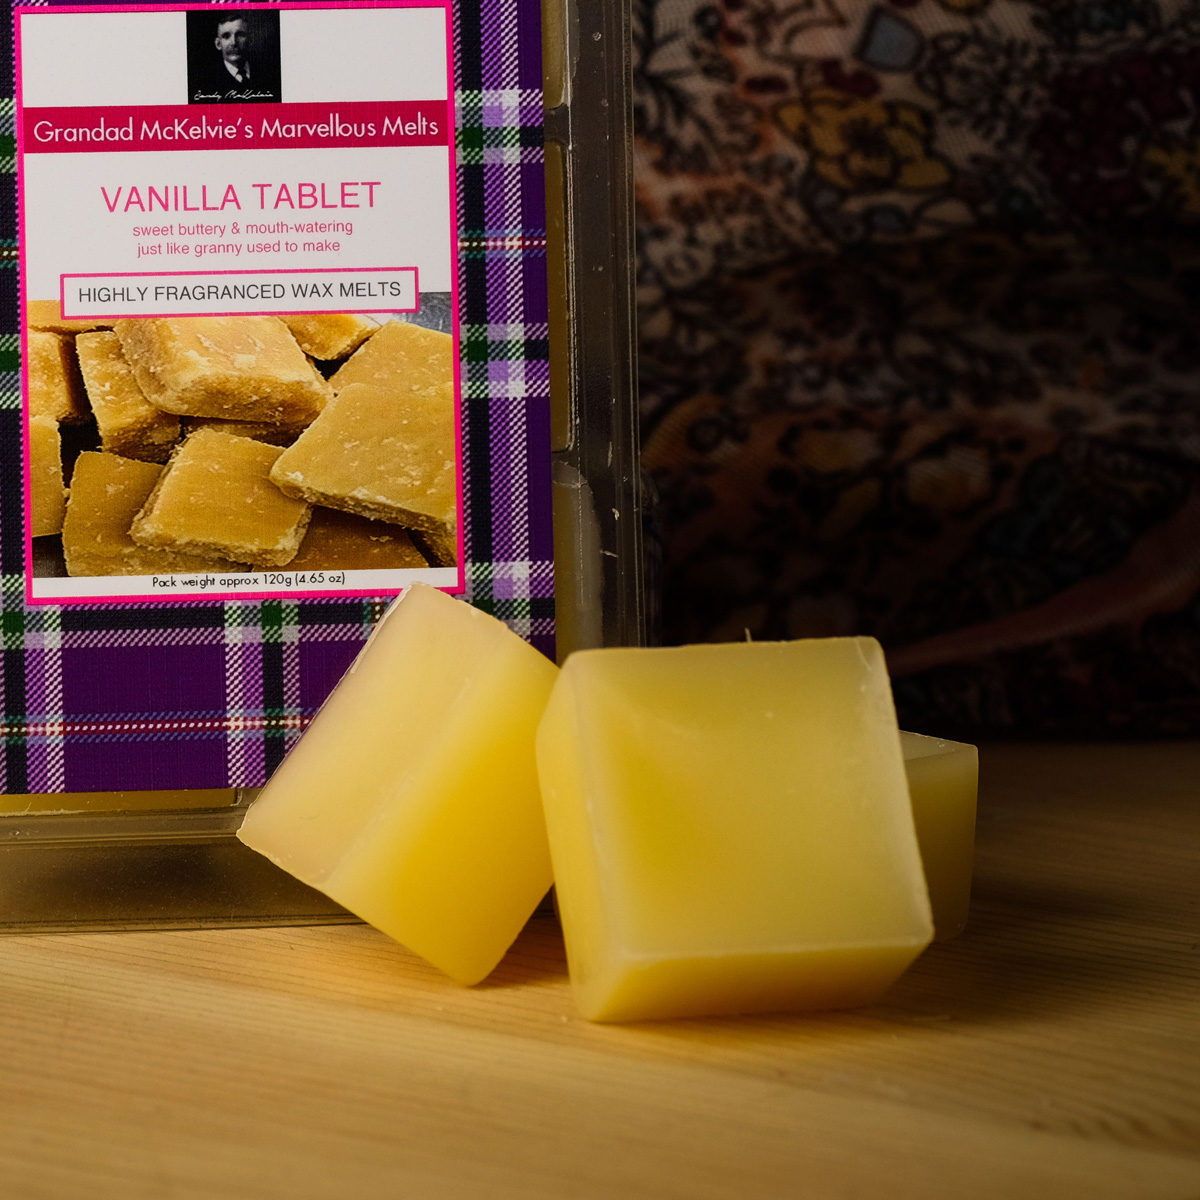 Vanilla Tablet Wax Melts